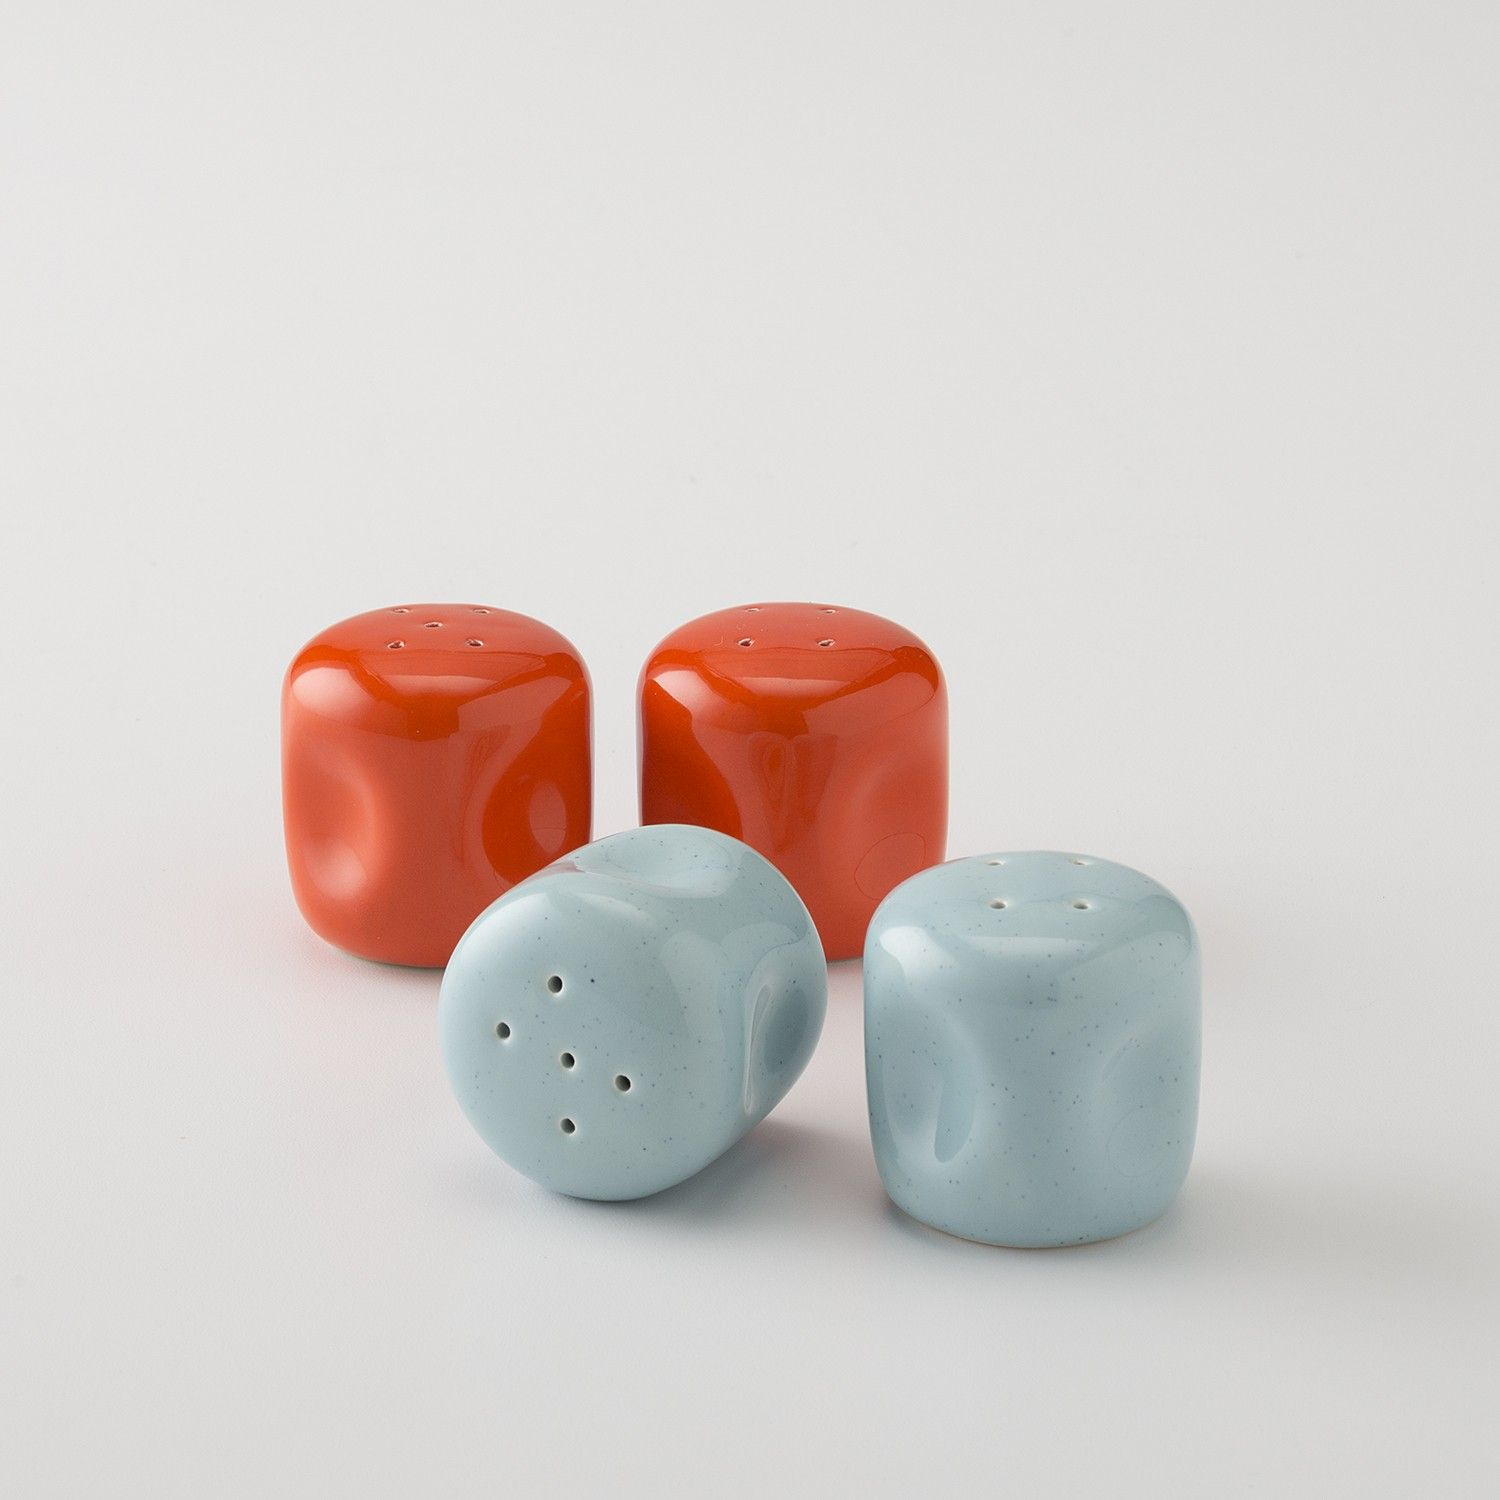 American Modern design at its finest. First introduced in 1939 and designed by Russel Wright, these bright salt and pepper shakers add a wonderful pop of color to any tablescape thanks to their trademark curvy silhouette and signature Bauer hue. Handcrafted exclusively by Bauer Pottery in Southern California.